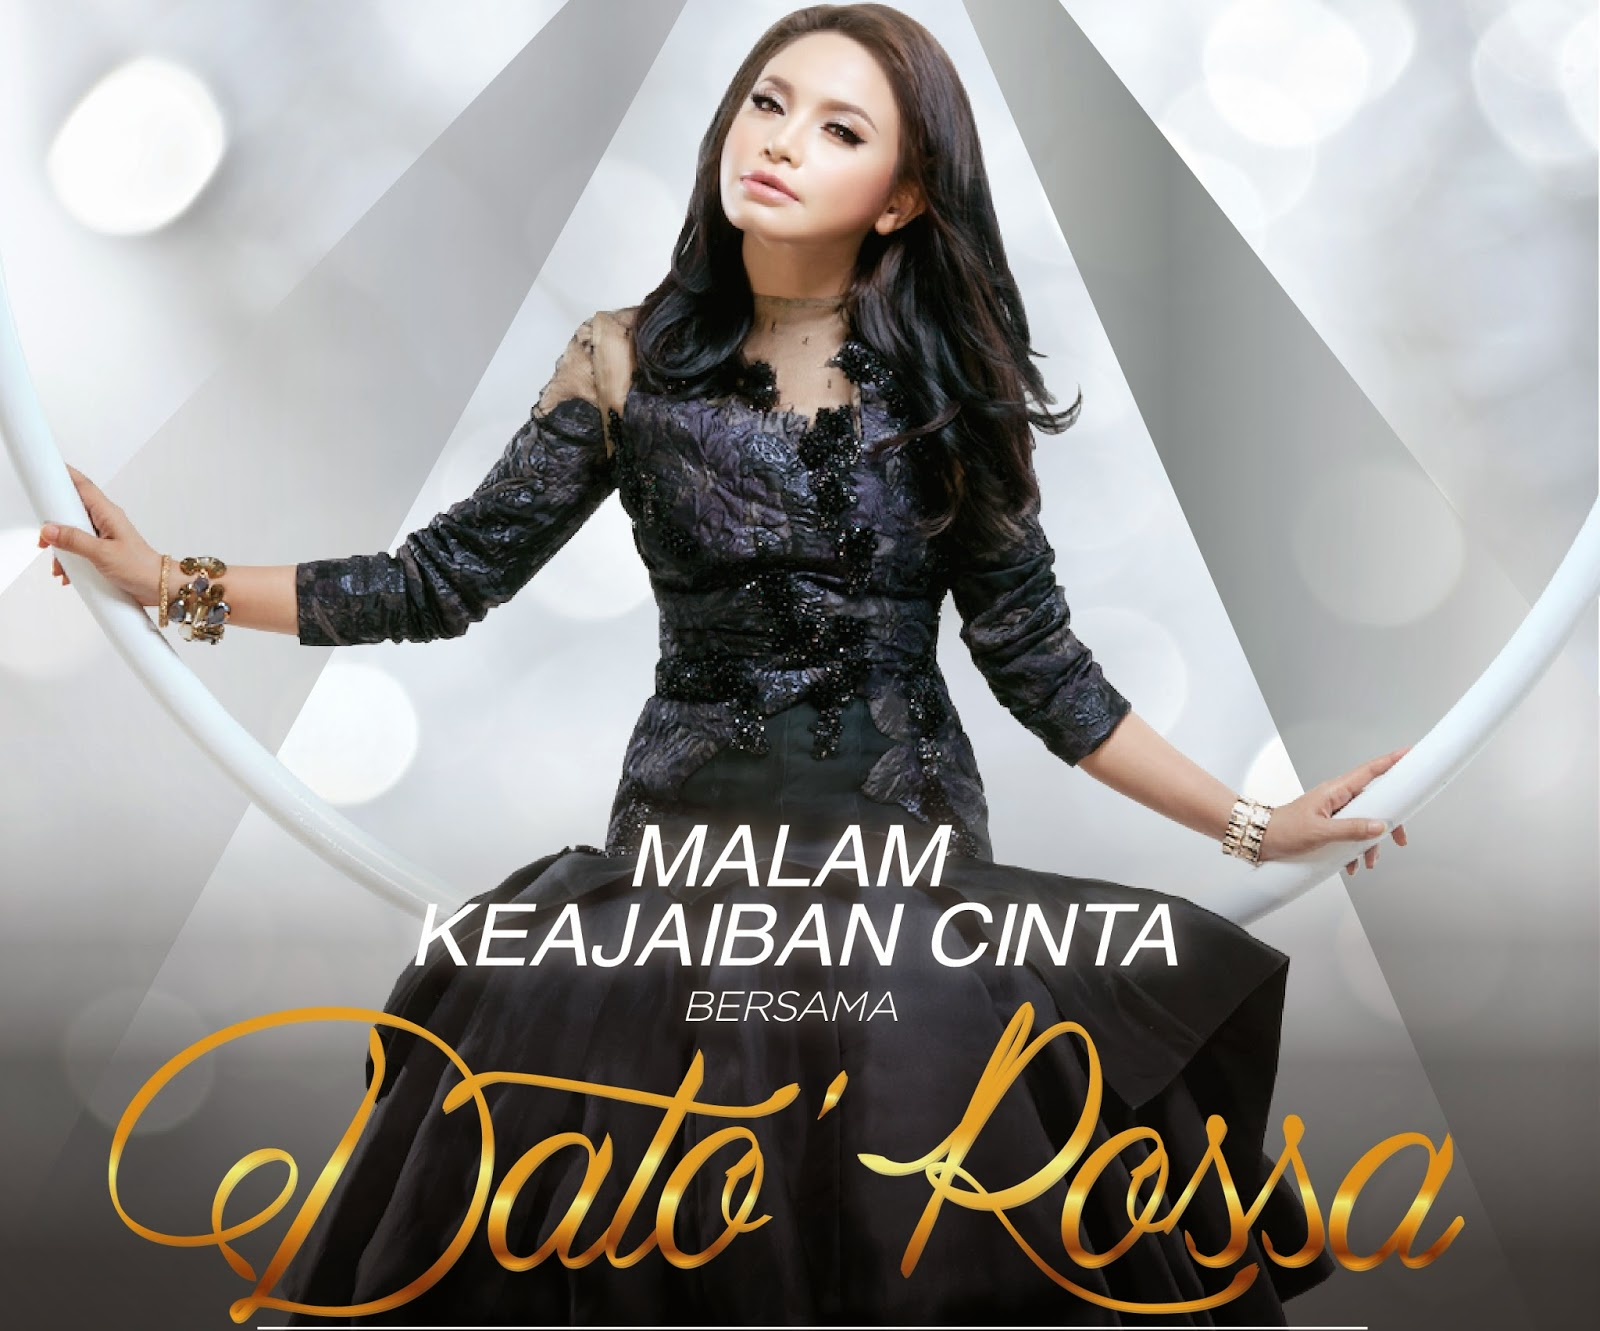 Rossa to perform at Istana Budaya this month